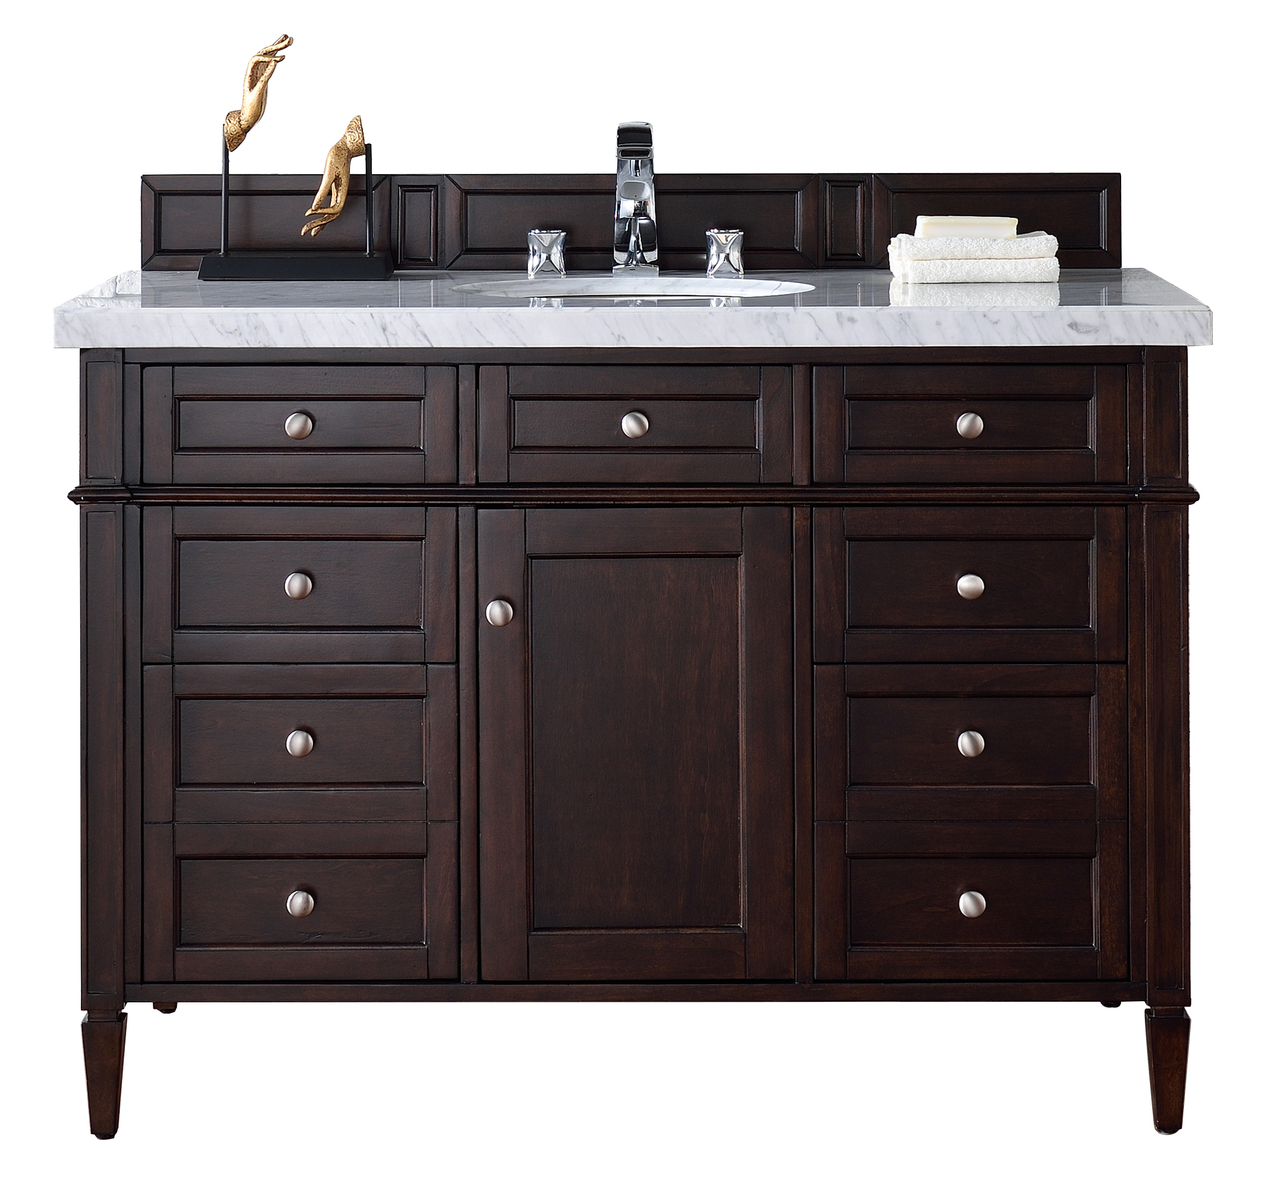 Modern Vanity Tops : James martin brittany collection quot single vanity